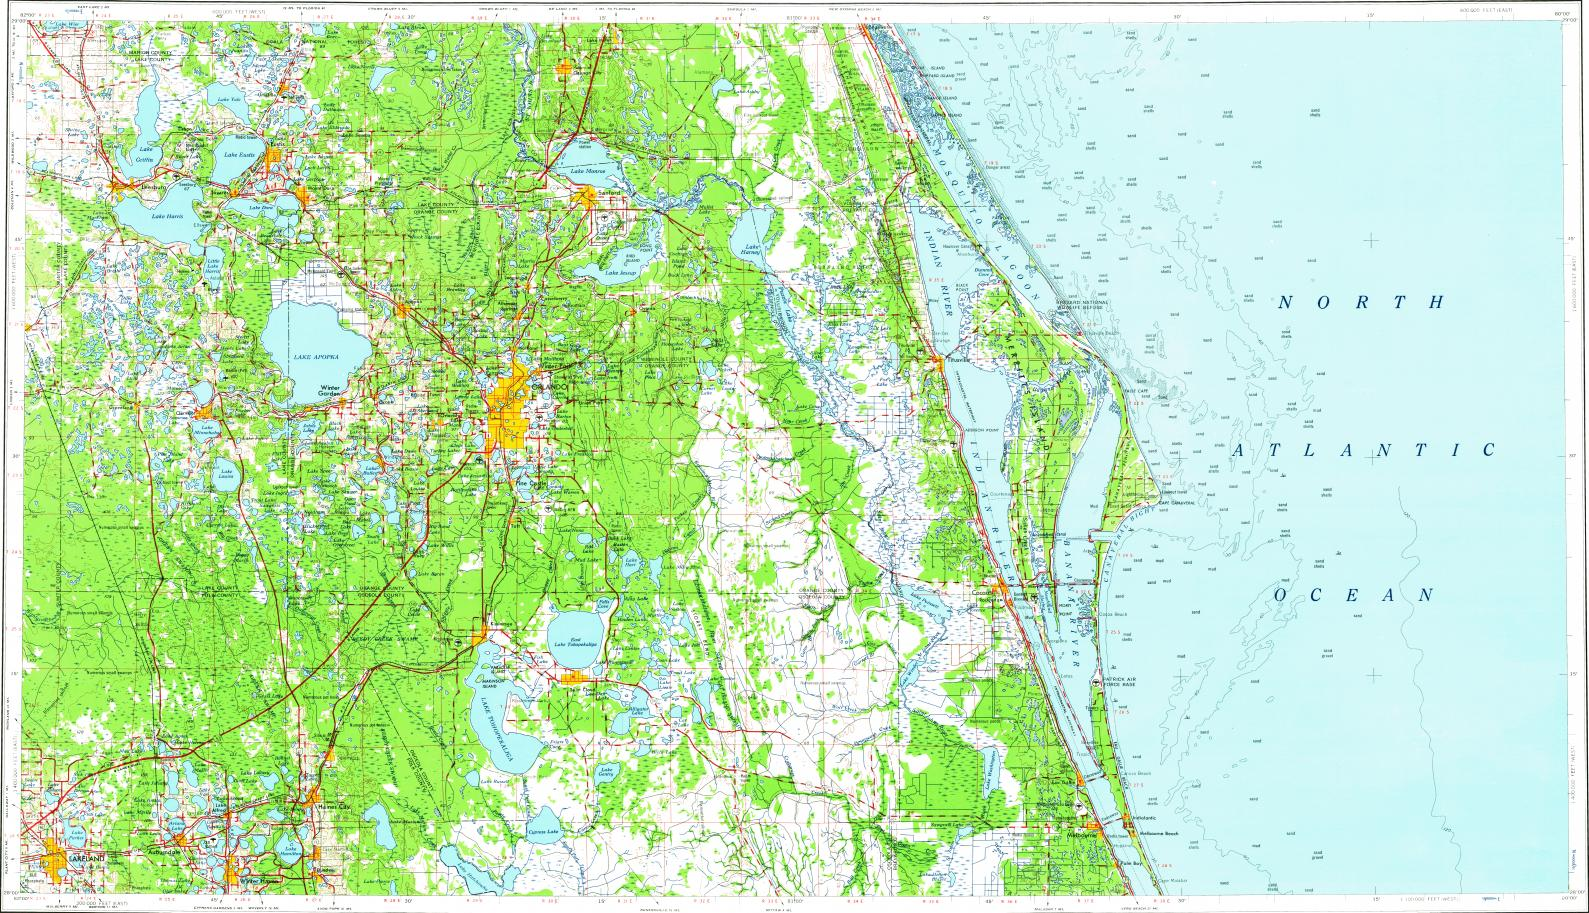 Download topographic map in area of Orlando, Melbourne ...